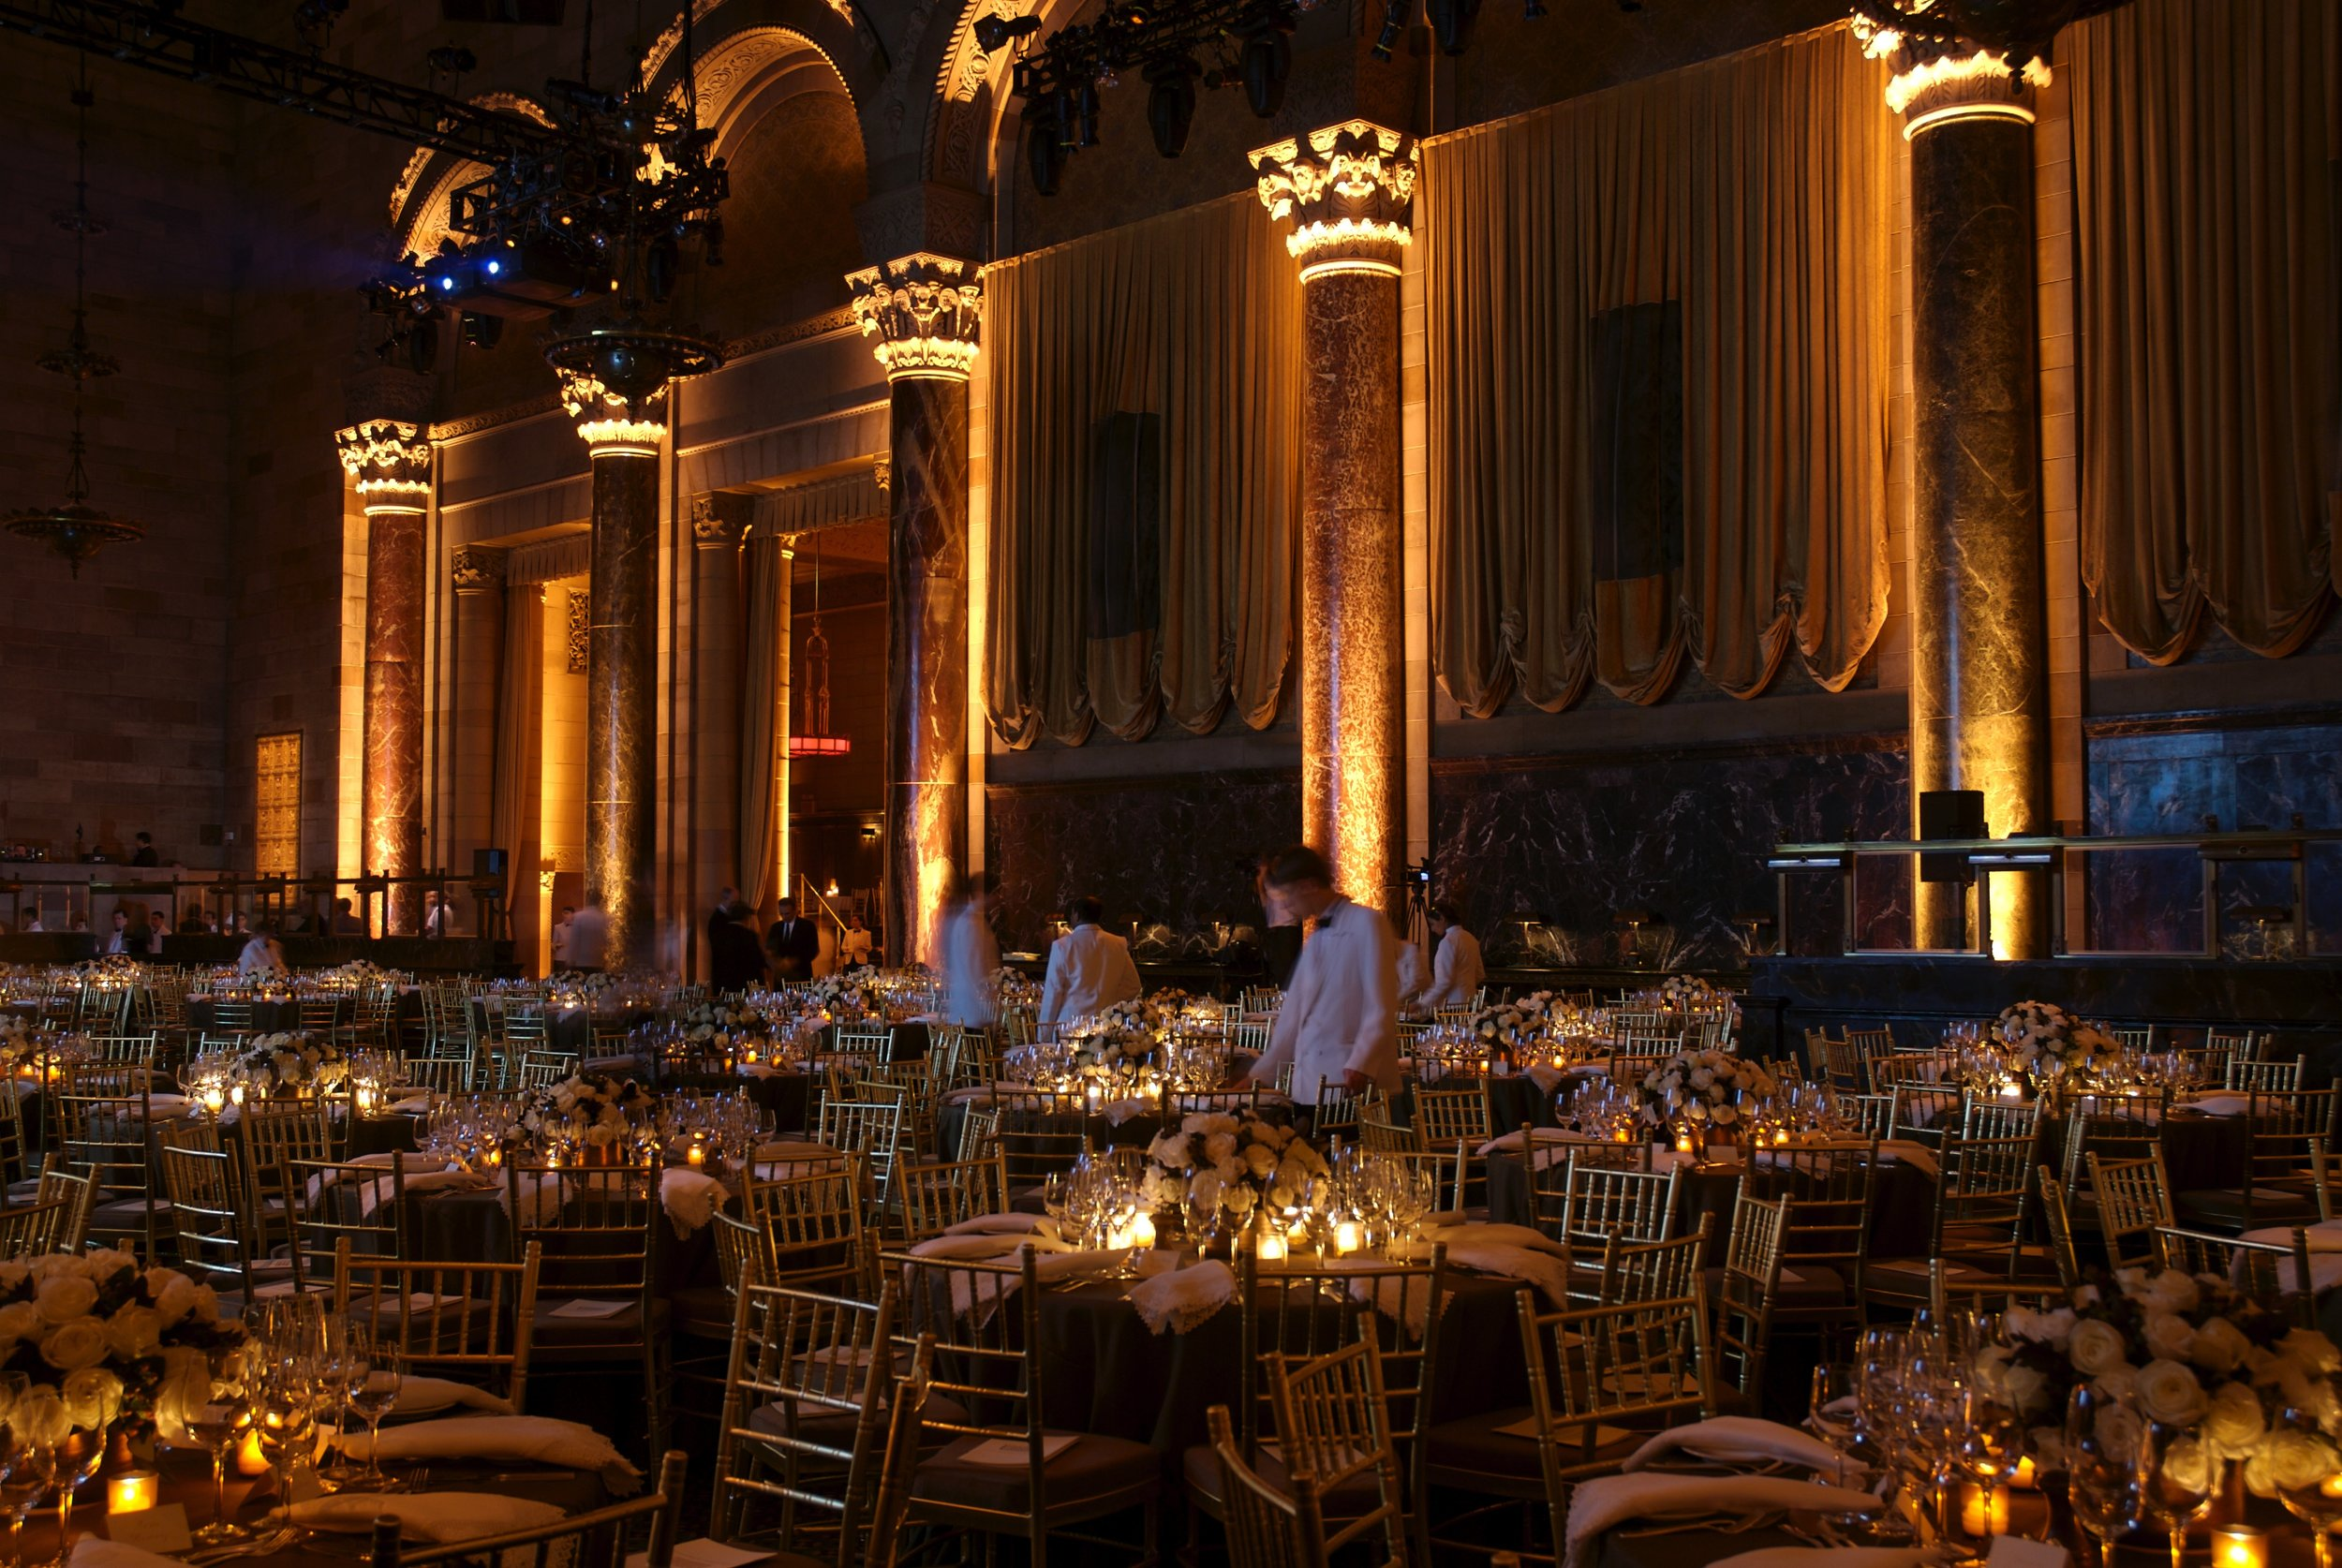 Historical Society Gala at Cipriani 42nd Street